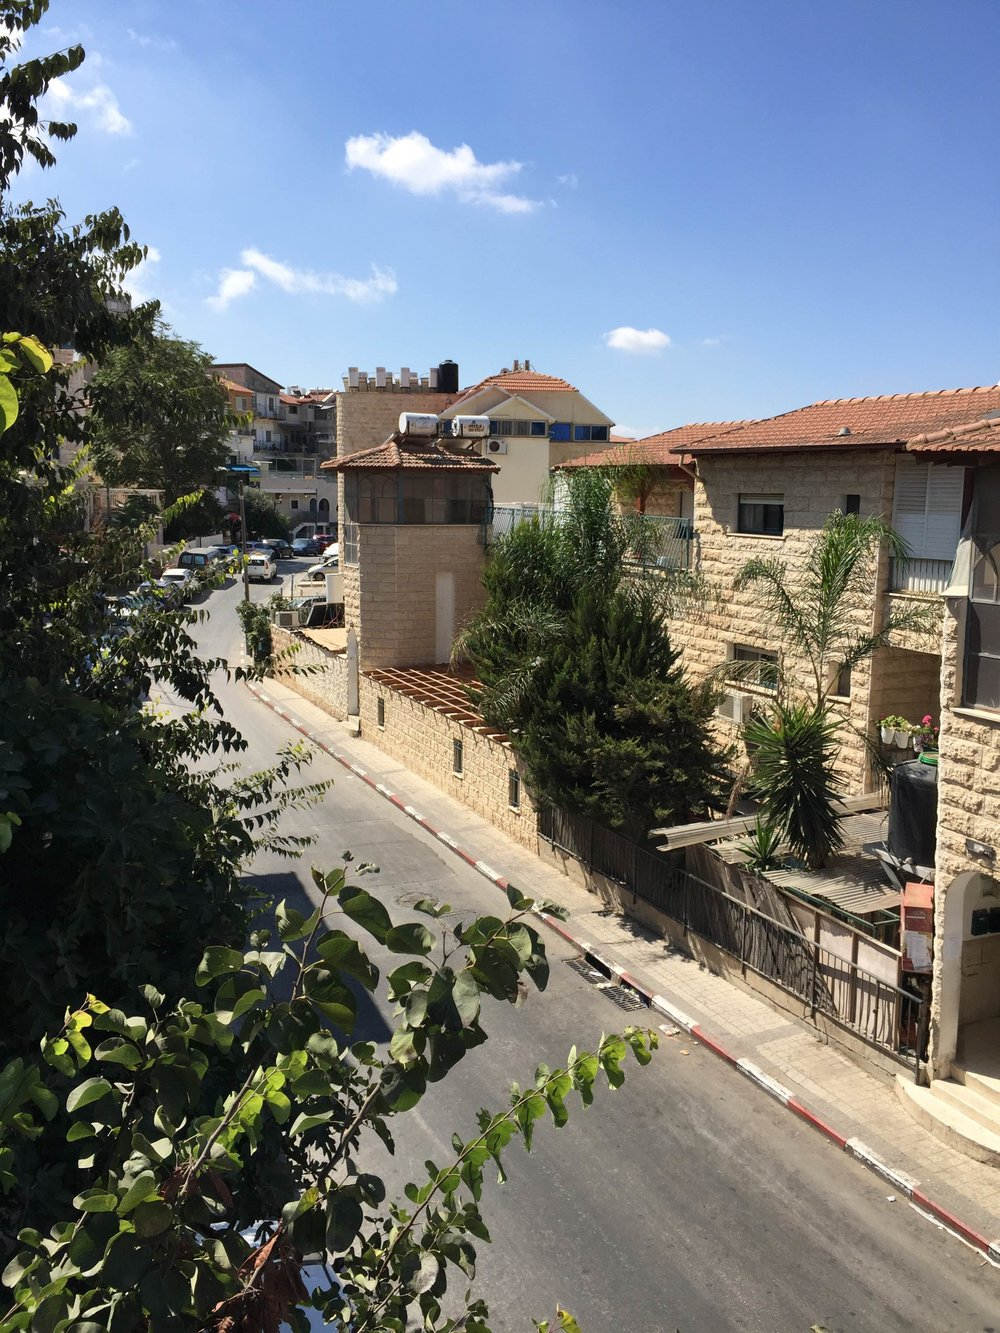 A view from outside the Rabbi Amichai's office in Tsfat